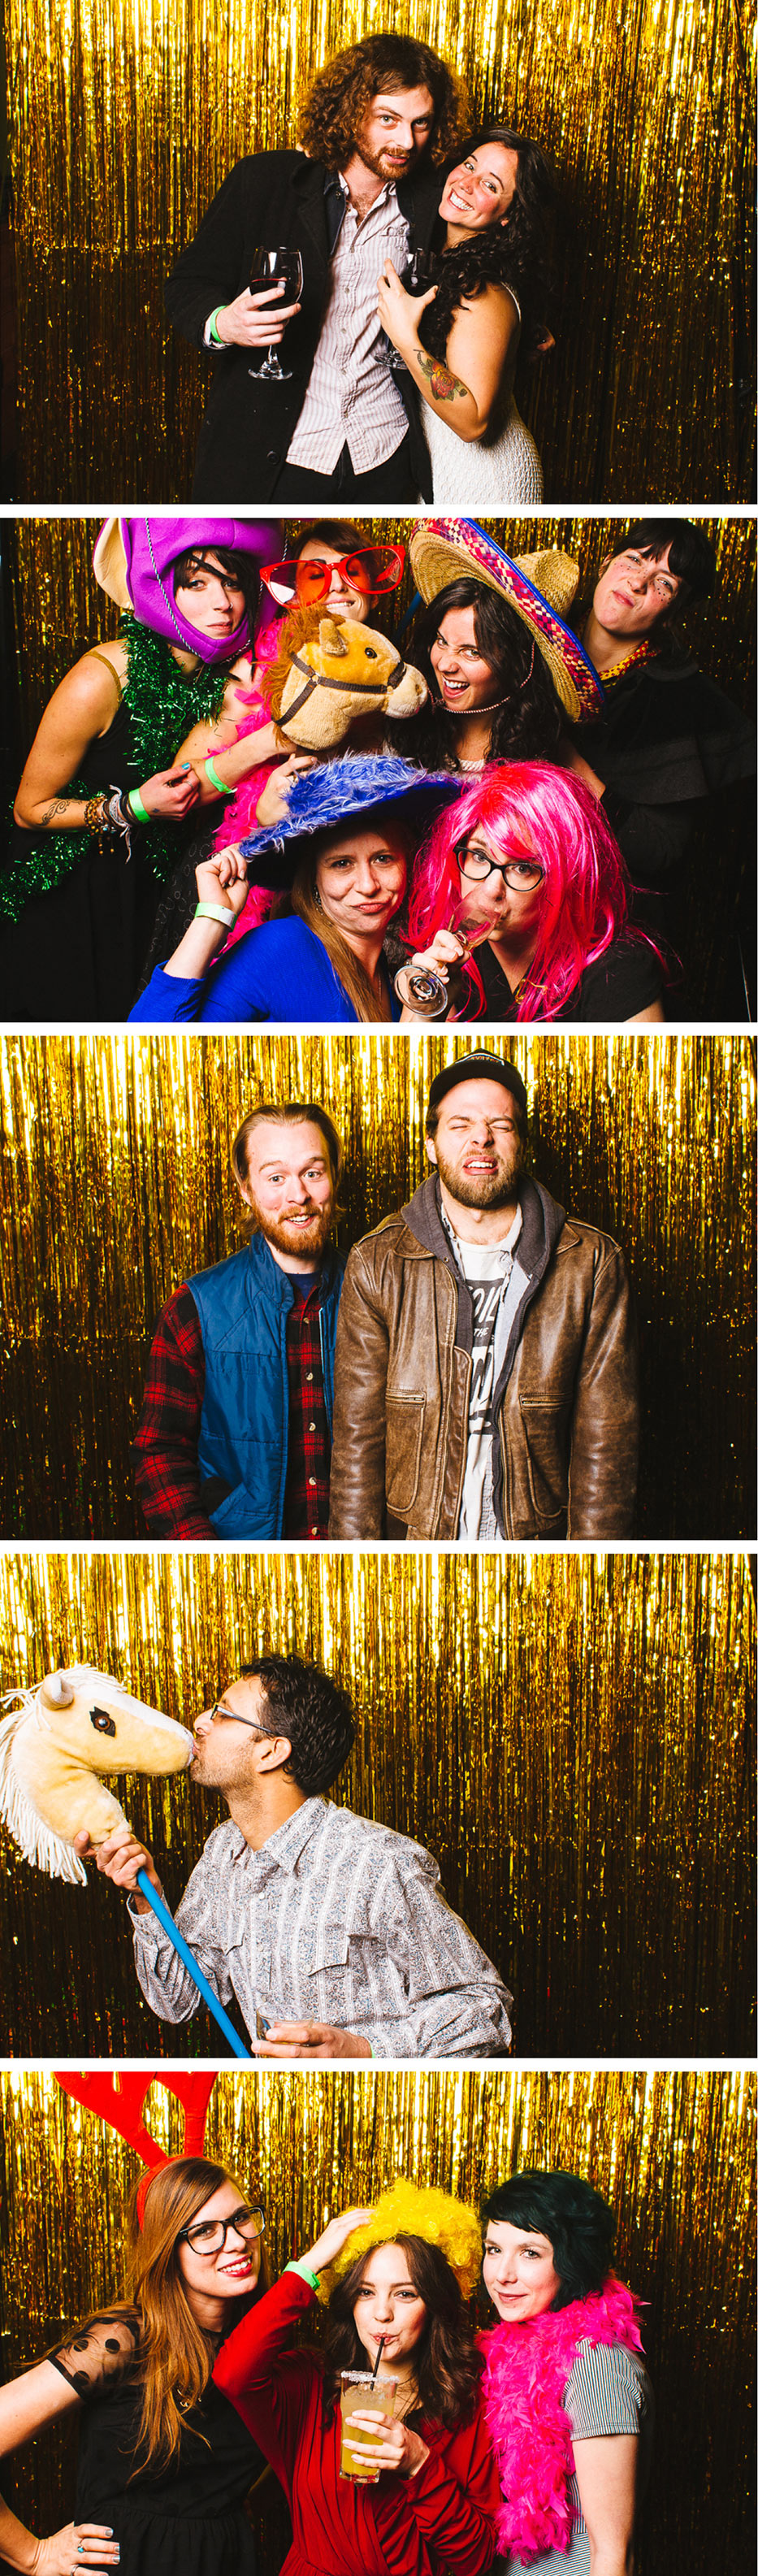 CK-Photo-Nashville-Photobooth-B4.jpg